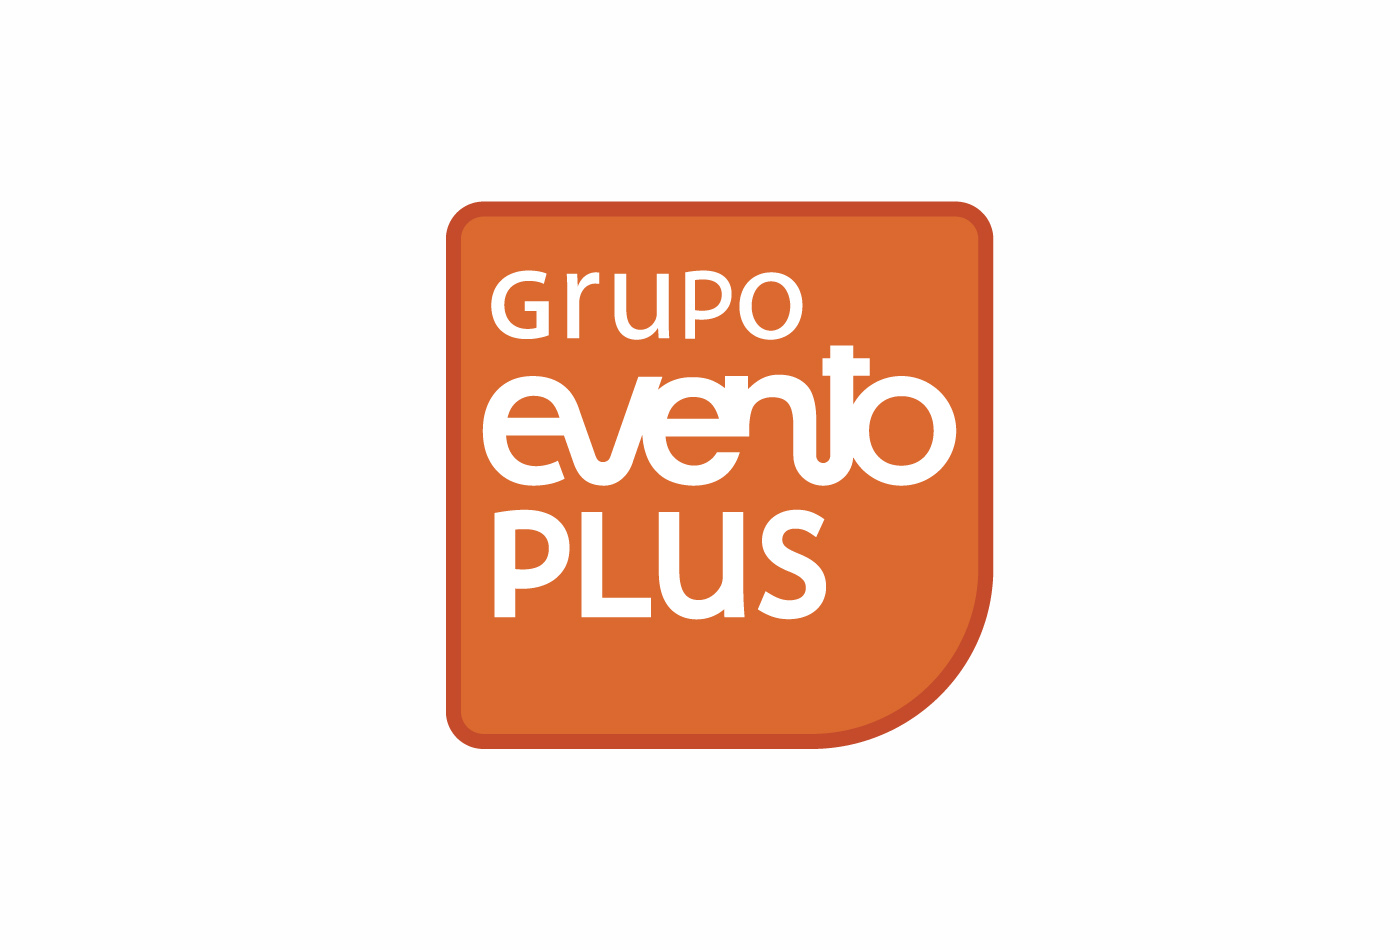 logo-grupo-evento-plus